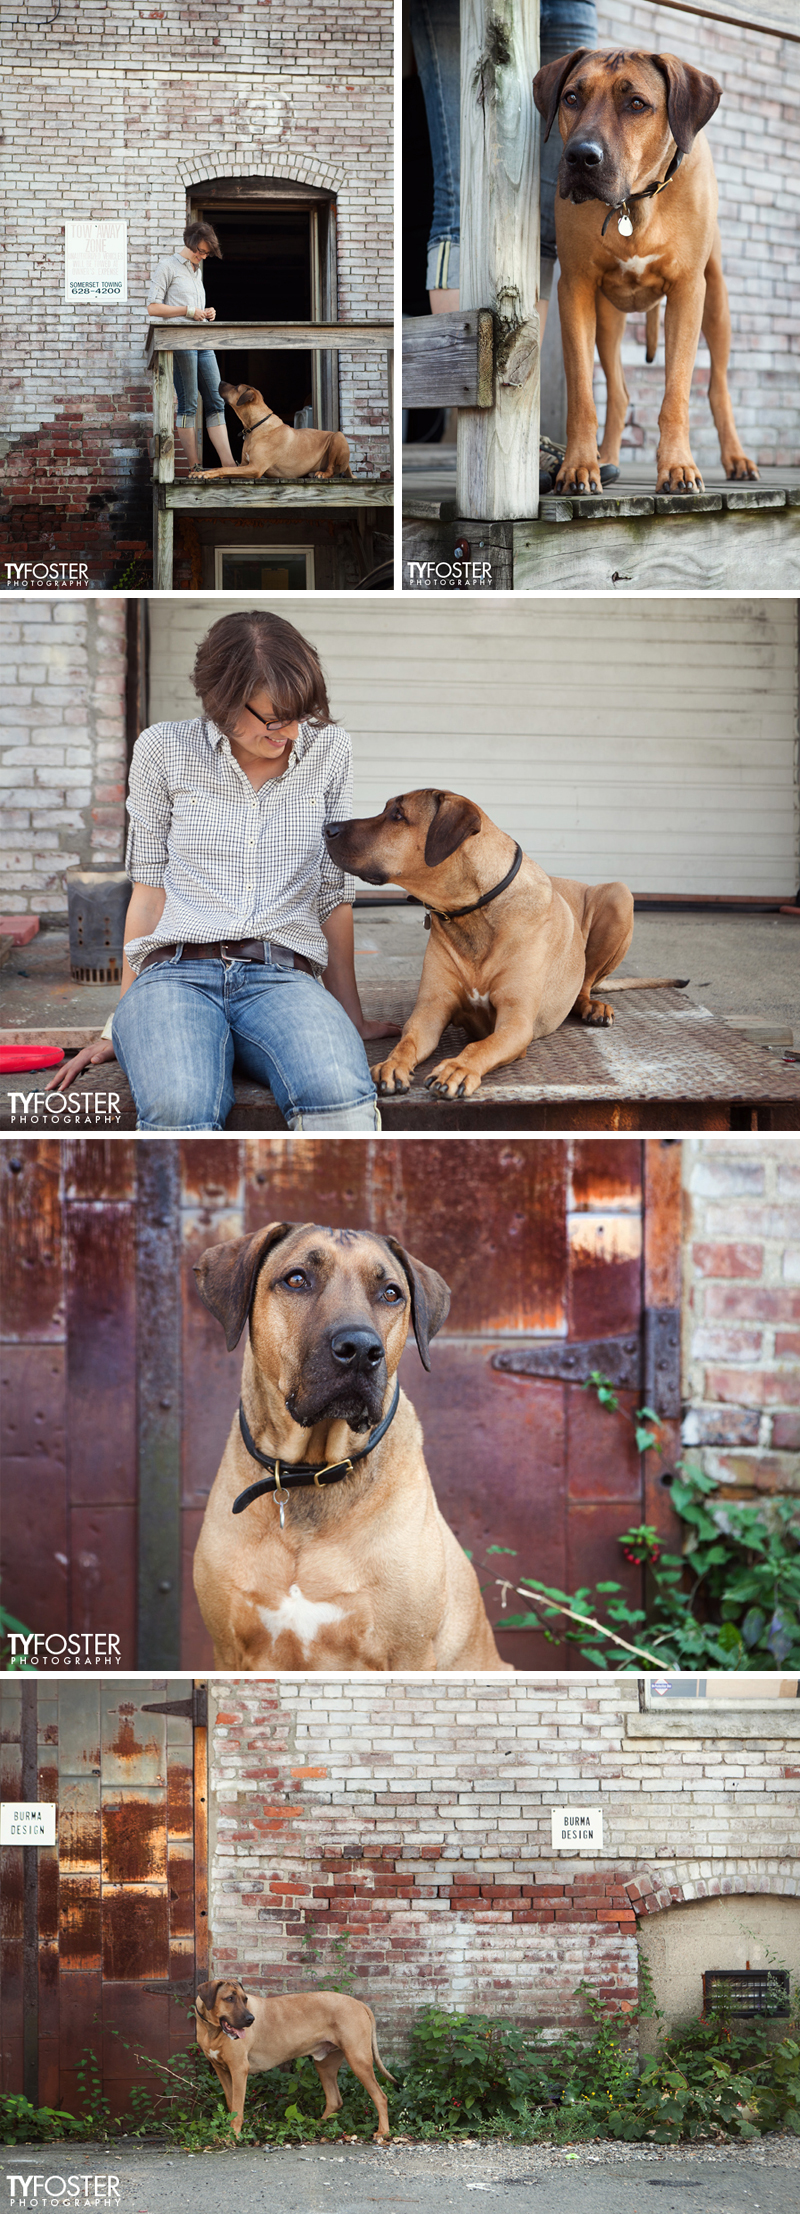 Ty Foster Photography, Rhodesian Ridgeback